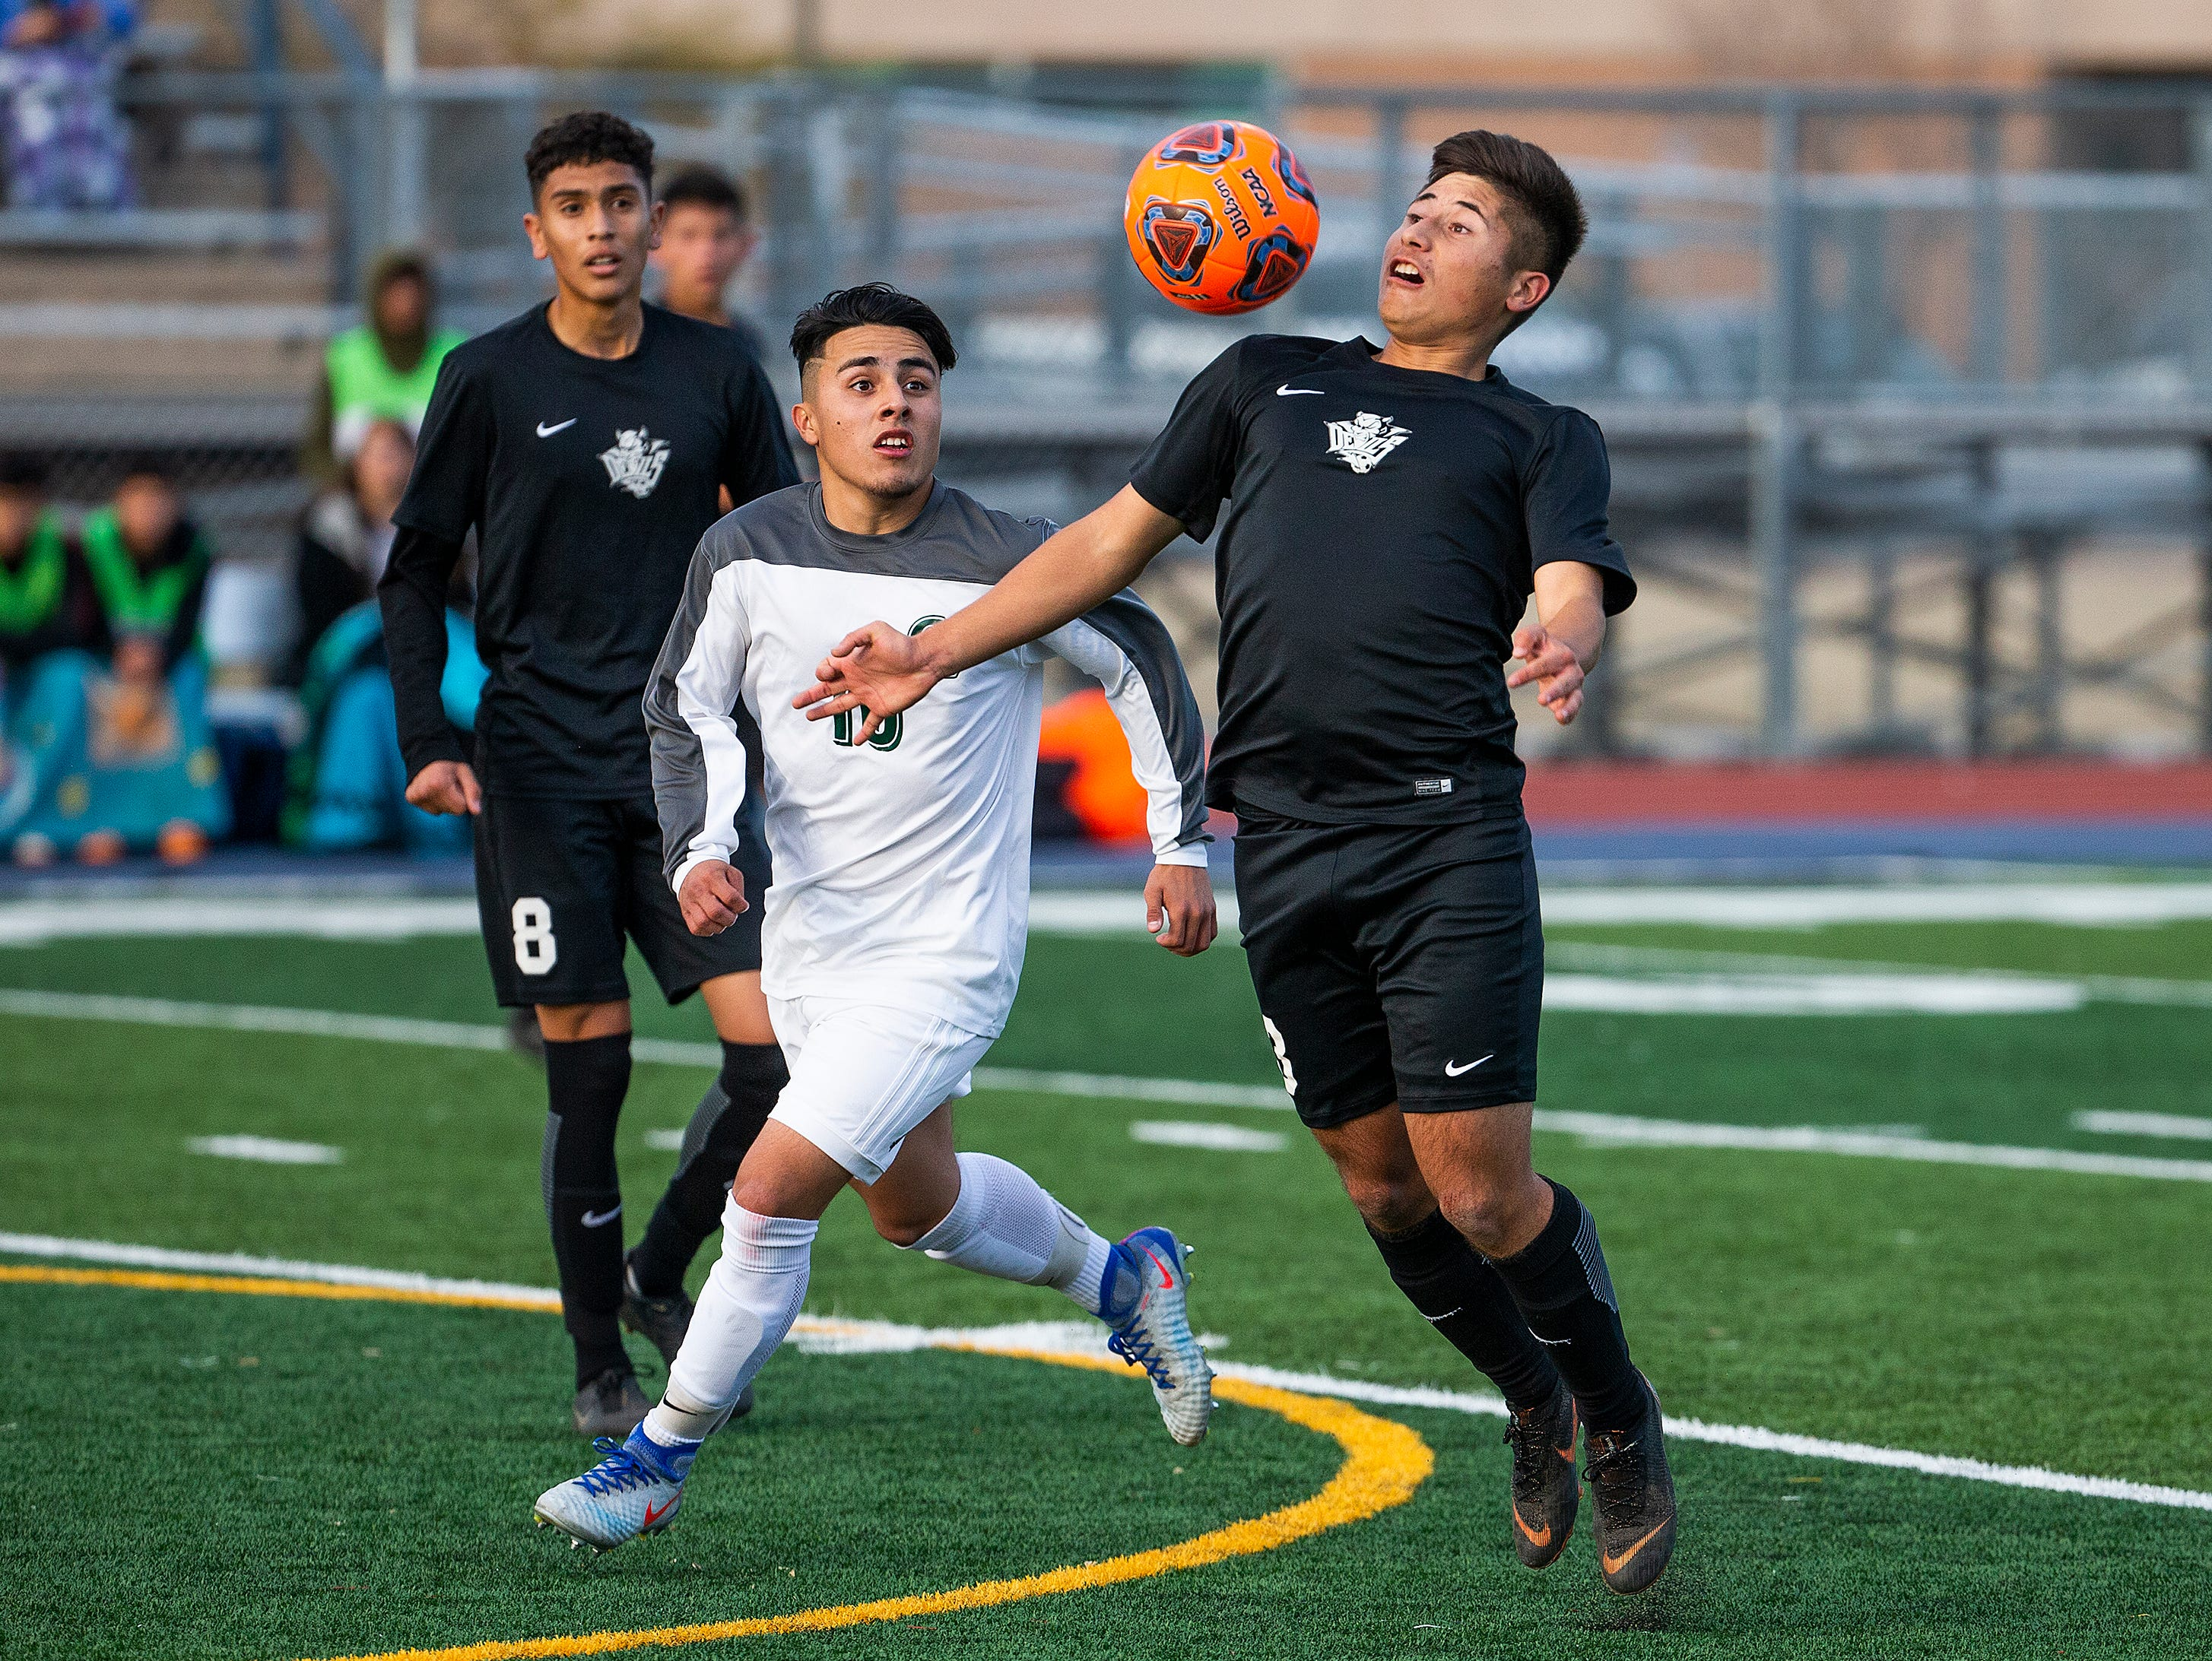 Campo Verde High School player Christian Flores, left, converges on Tucson Sunnyside High School player Juan Correa during the 5A State Soccer Championship at Coronado High School in Scottsdale, Wednesday, February 20, 2019.